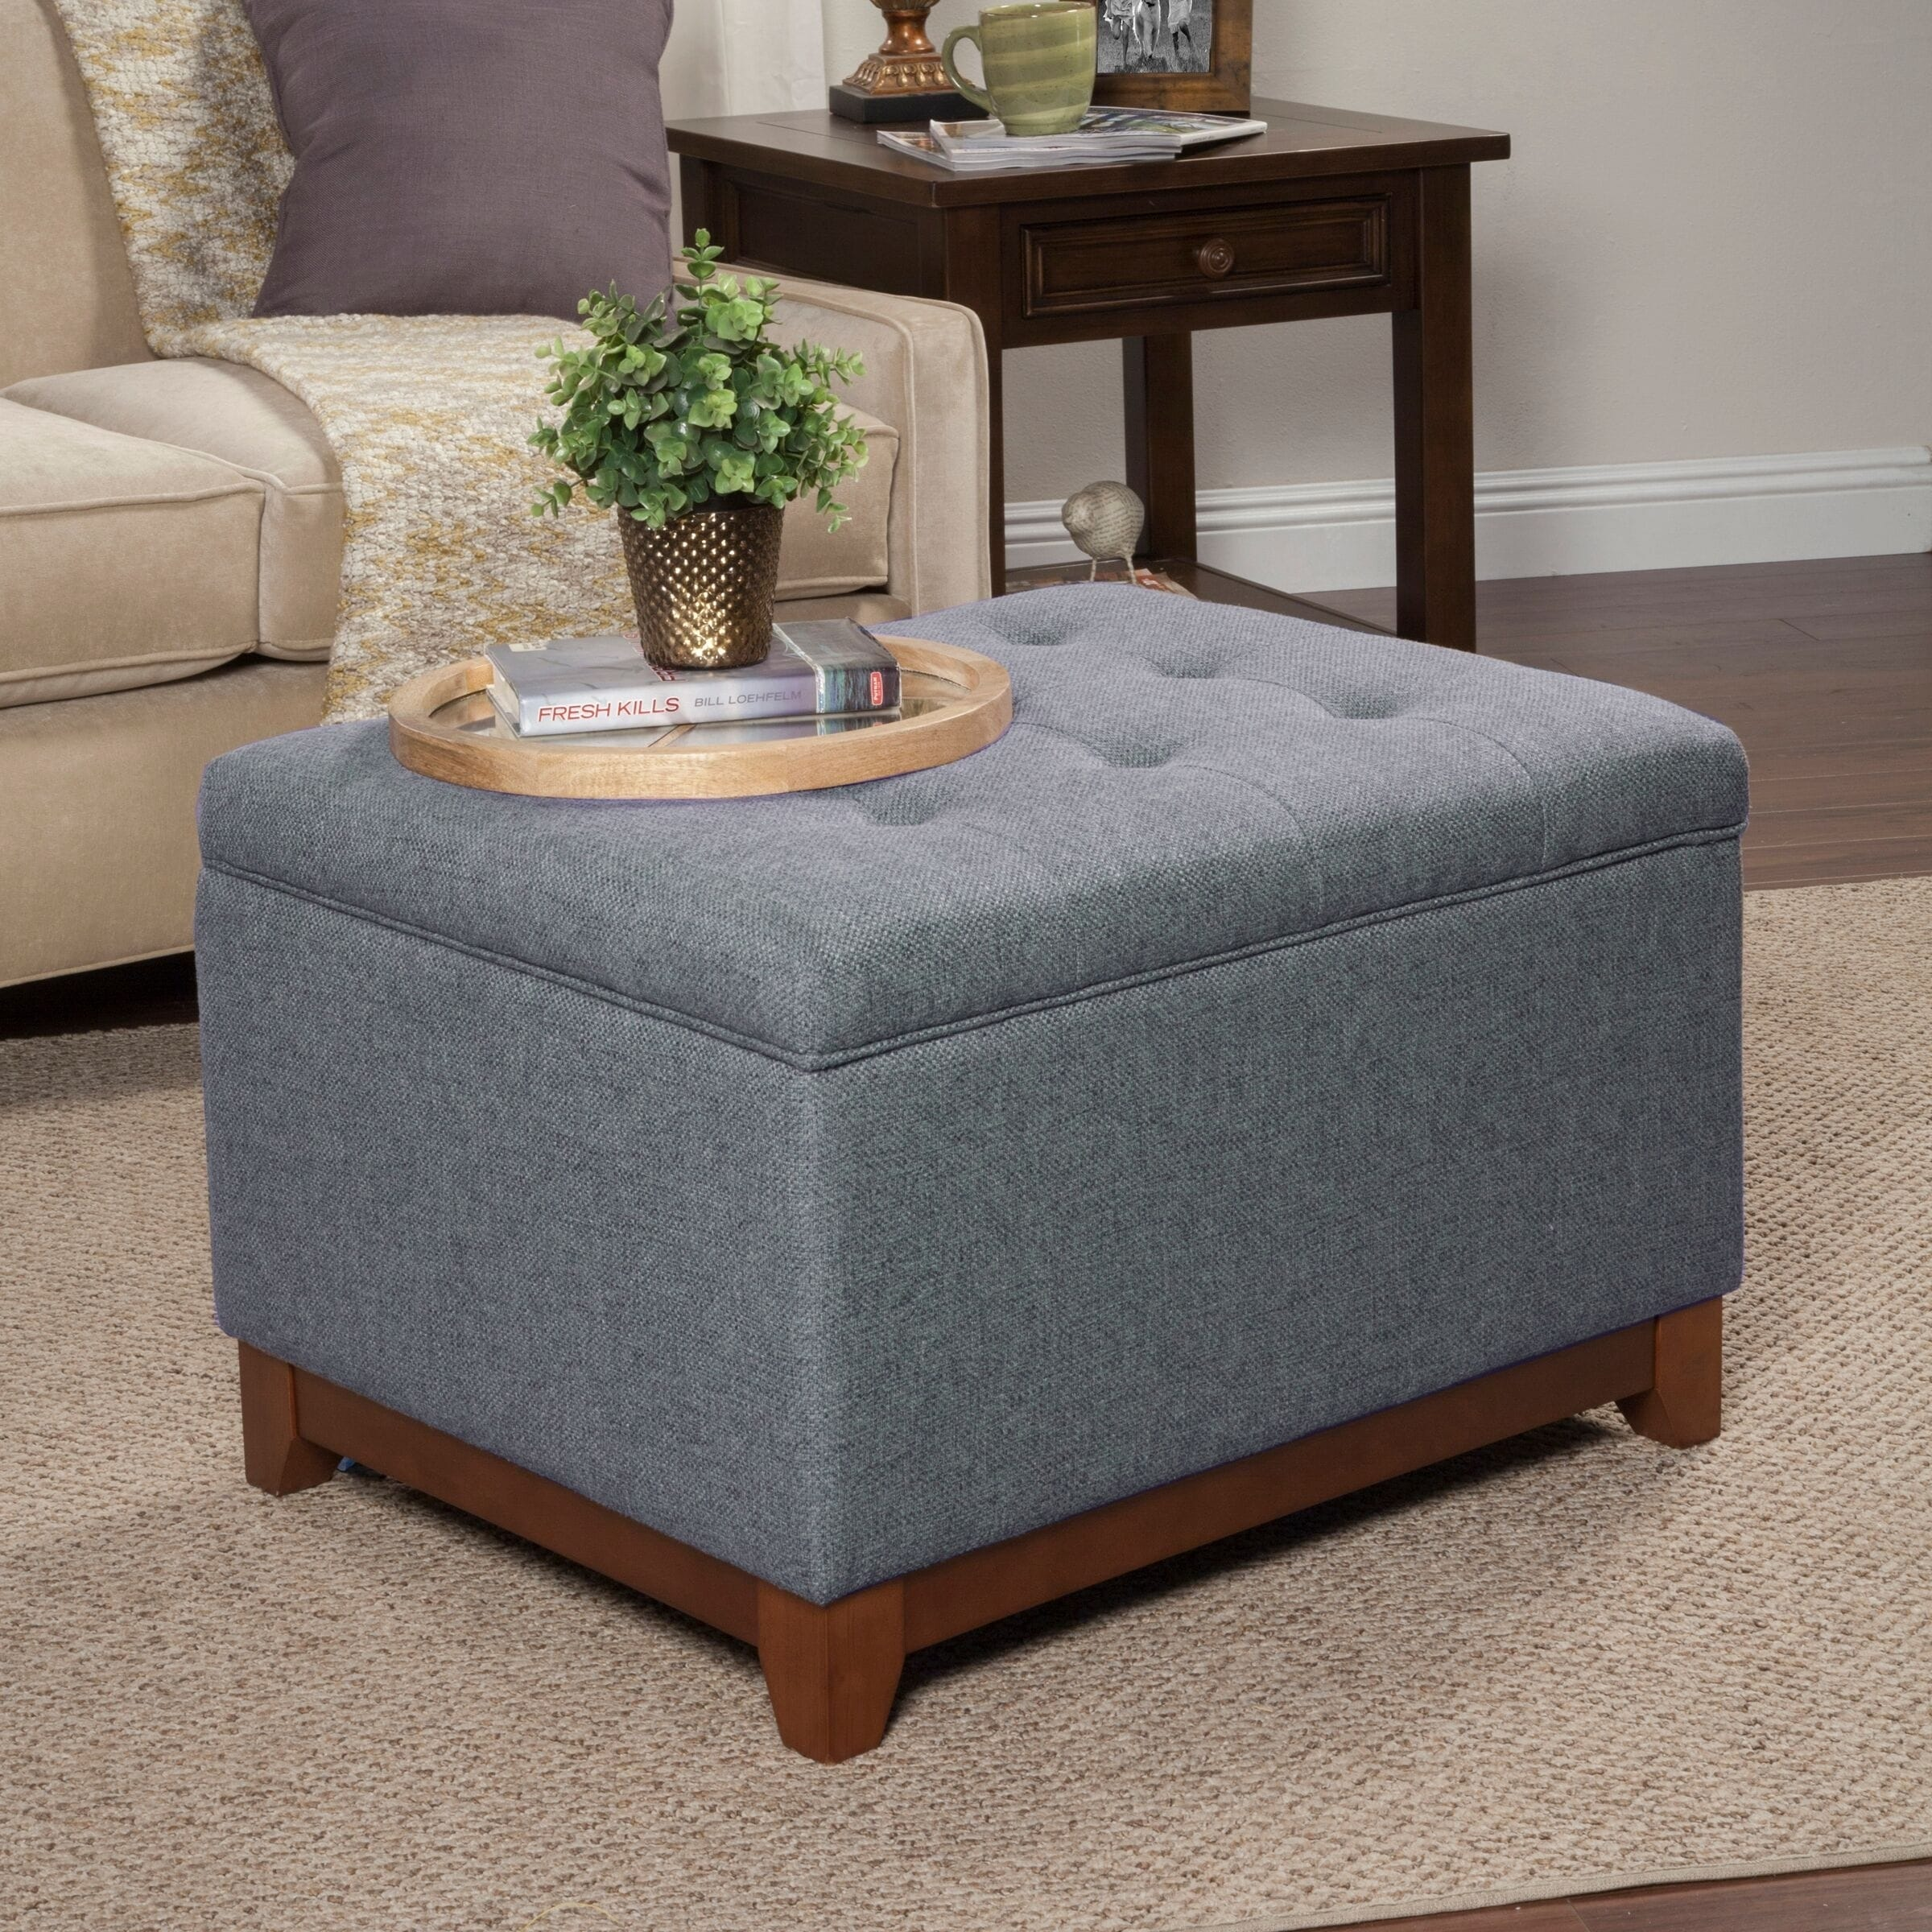 Copper Grove Germain Grey Large Square Tufted Bench With Wood Apron